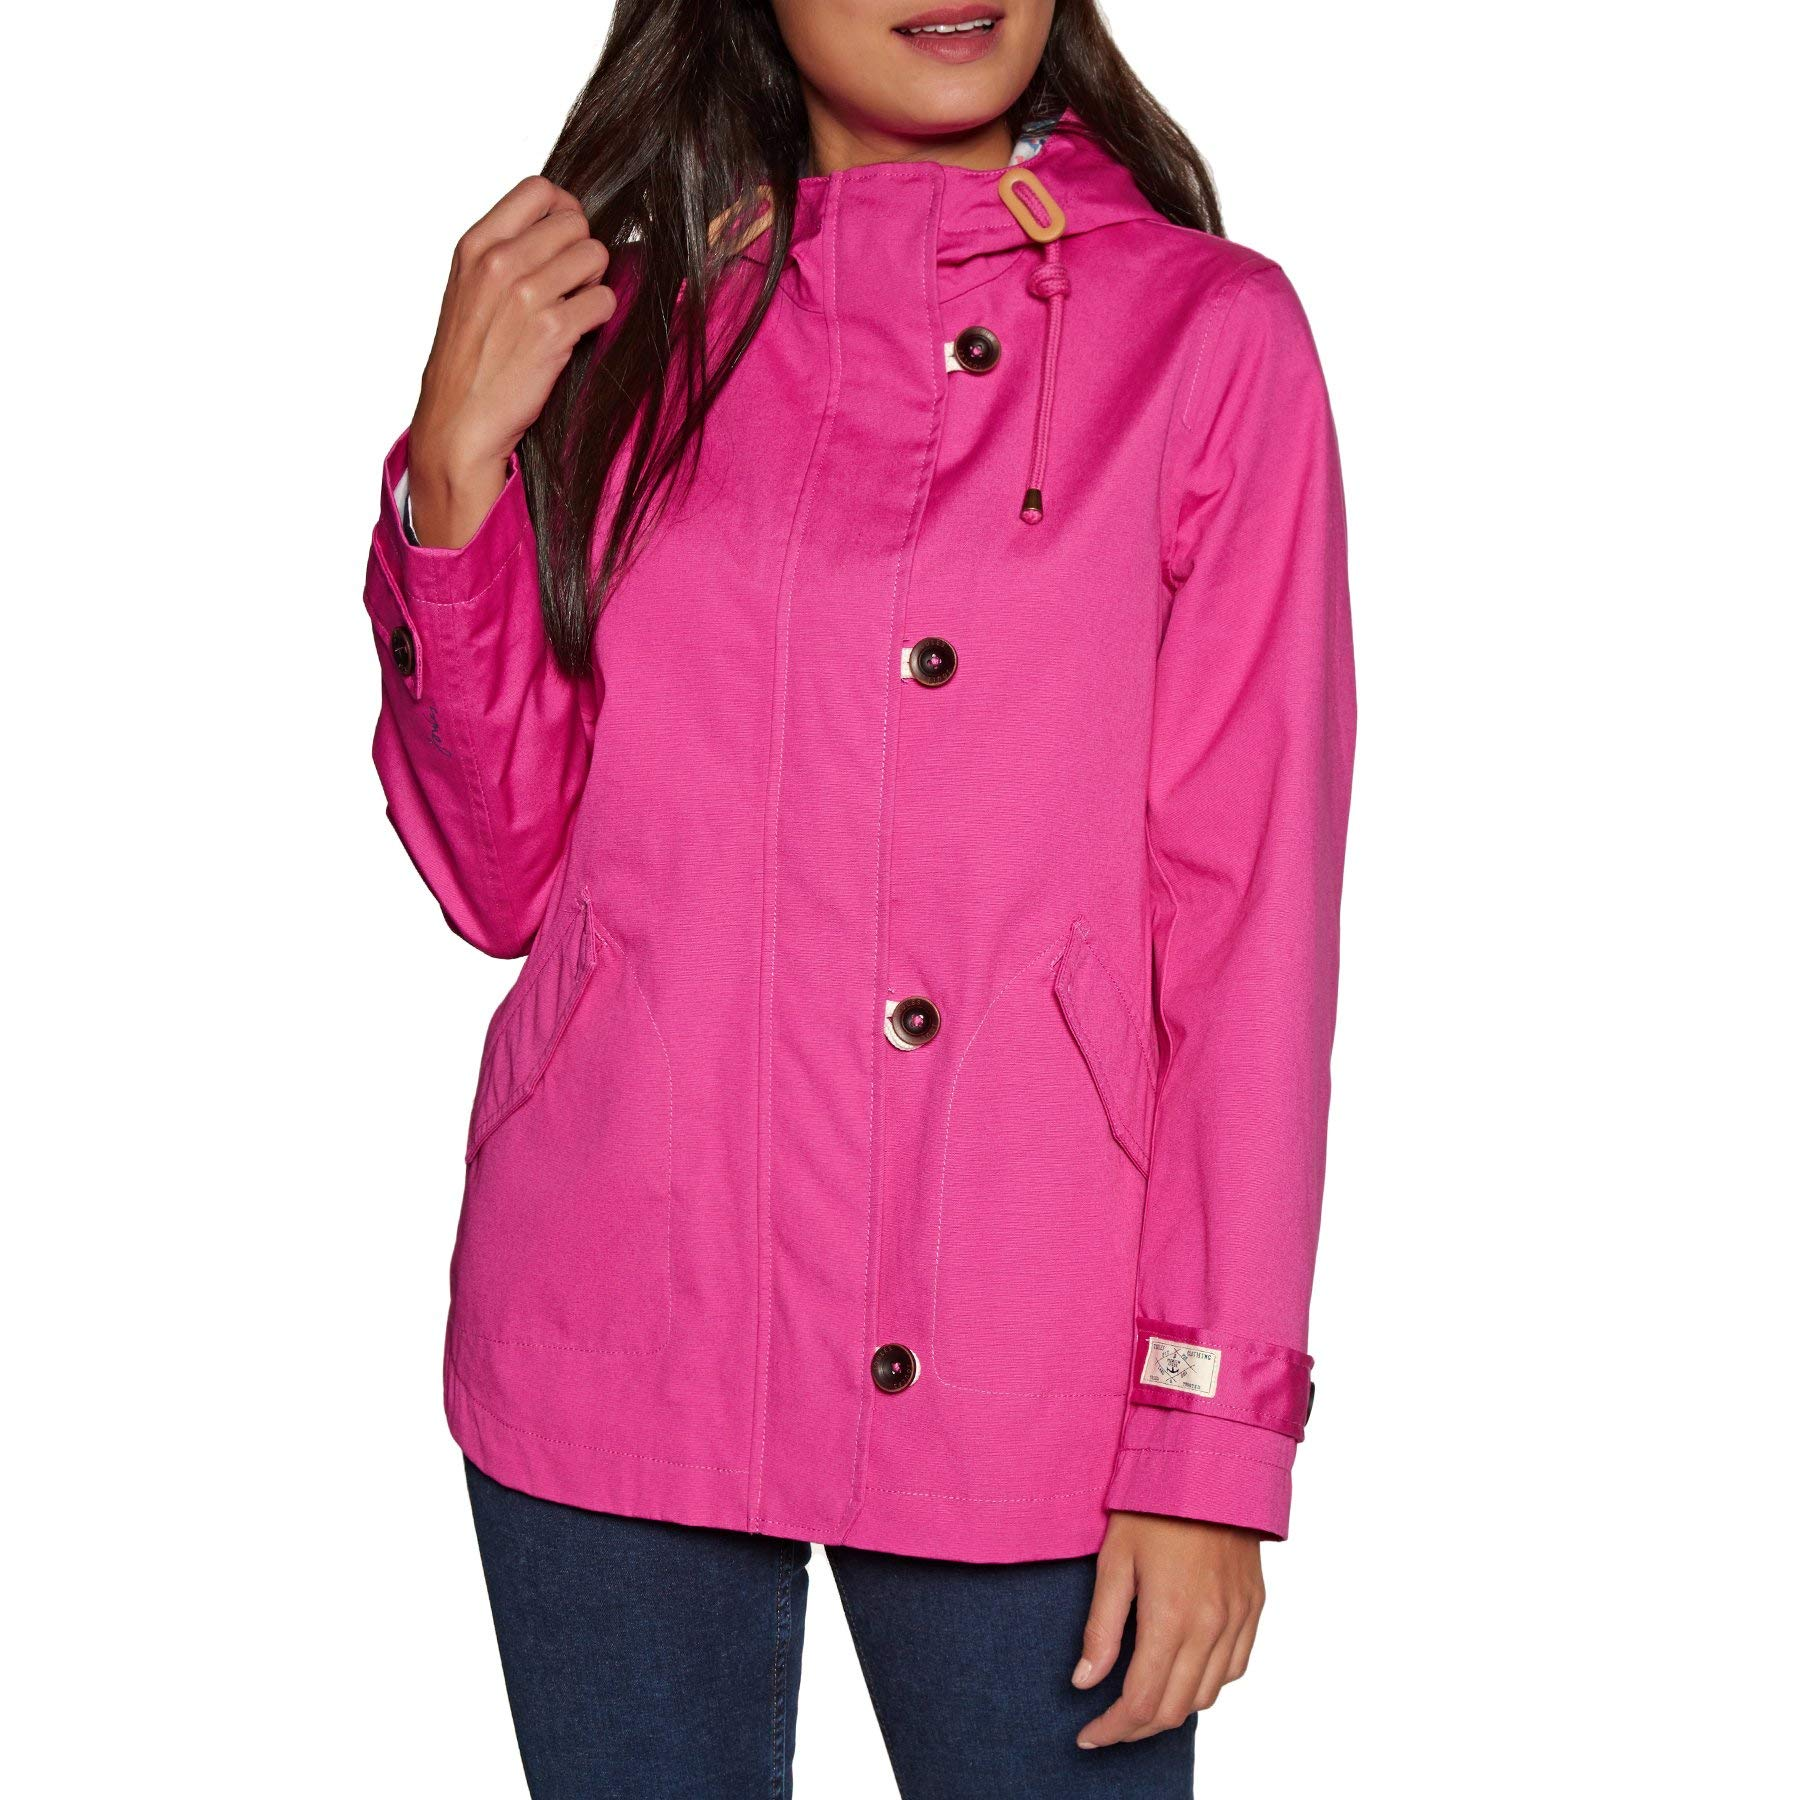 Joules, Coasted Hooded Jacket, Pink, 4